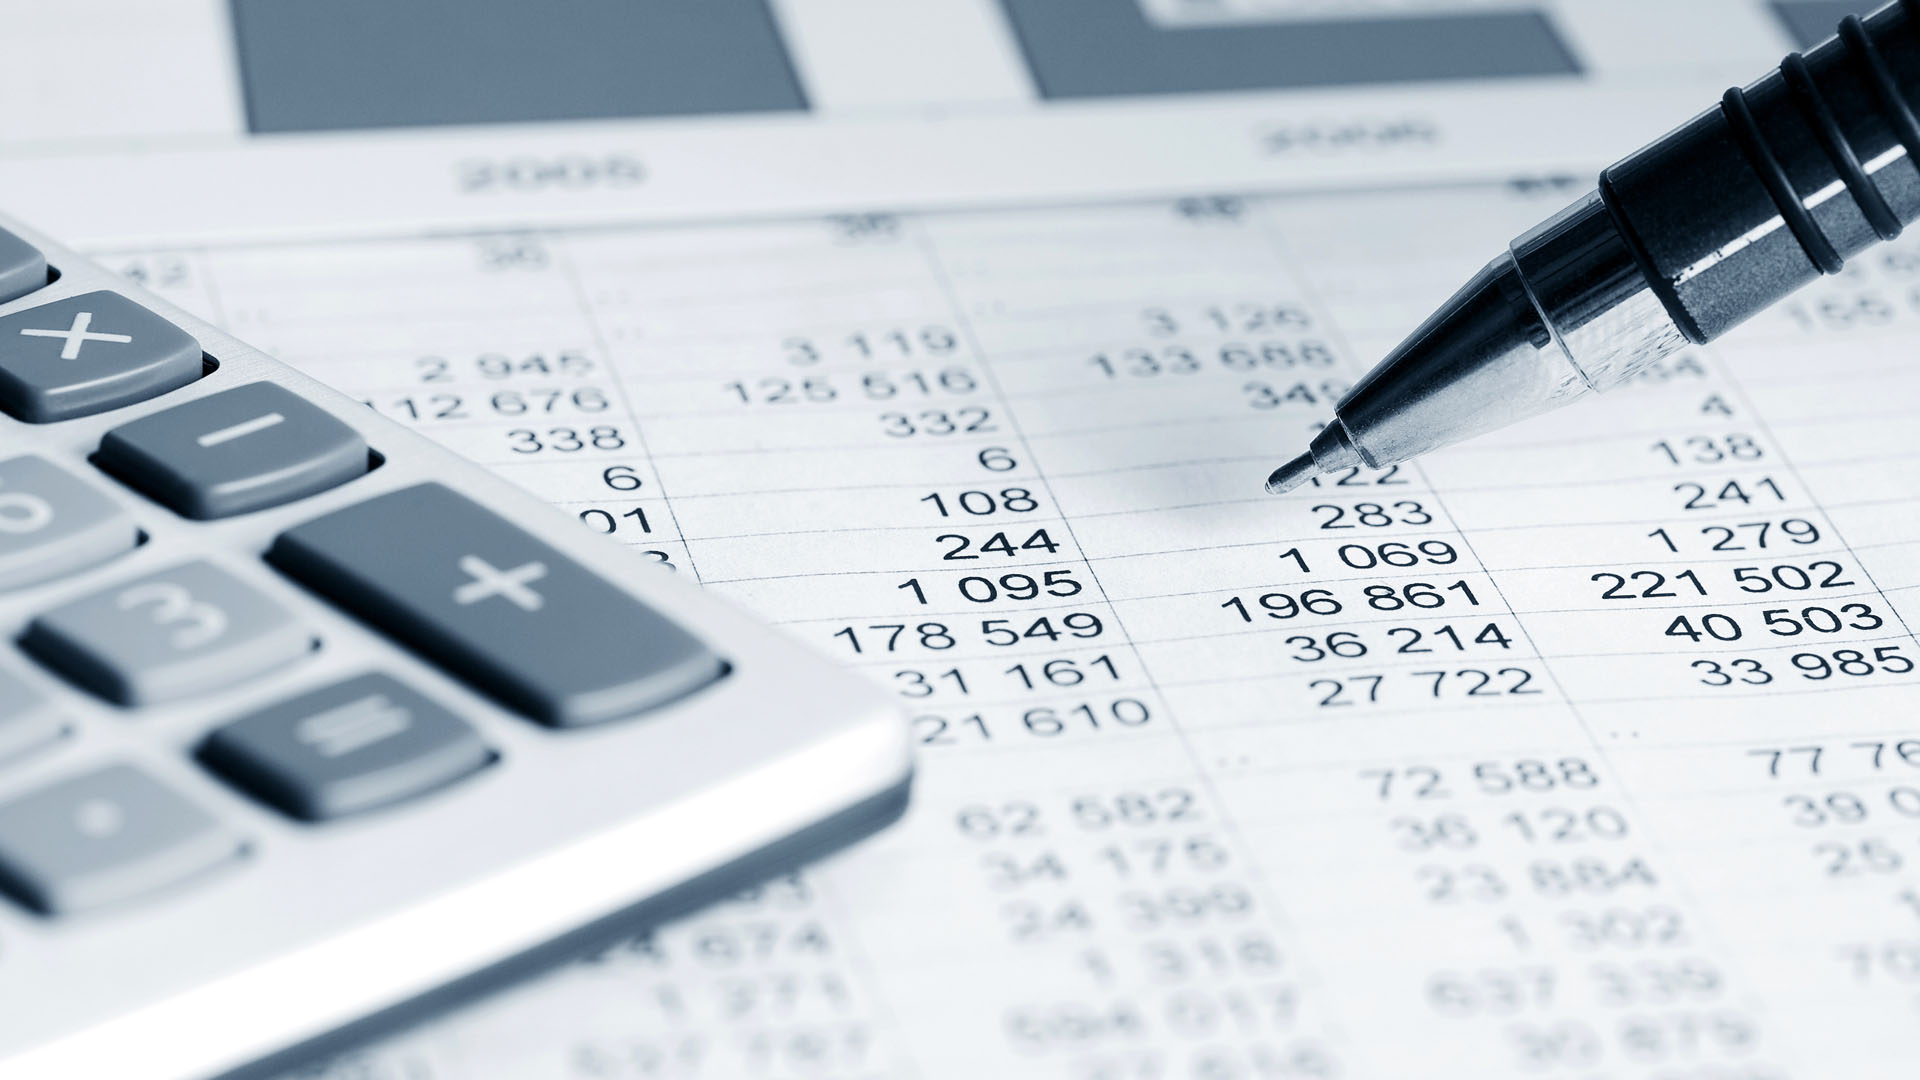 Irs withholding calculatorirs withholding calculator | greenocpa.